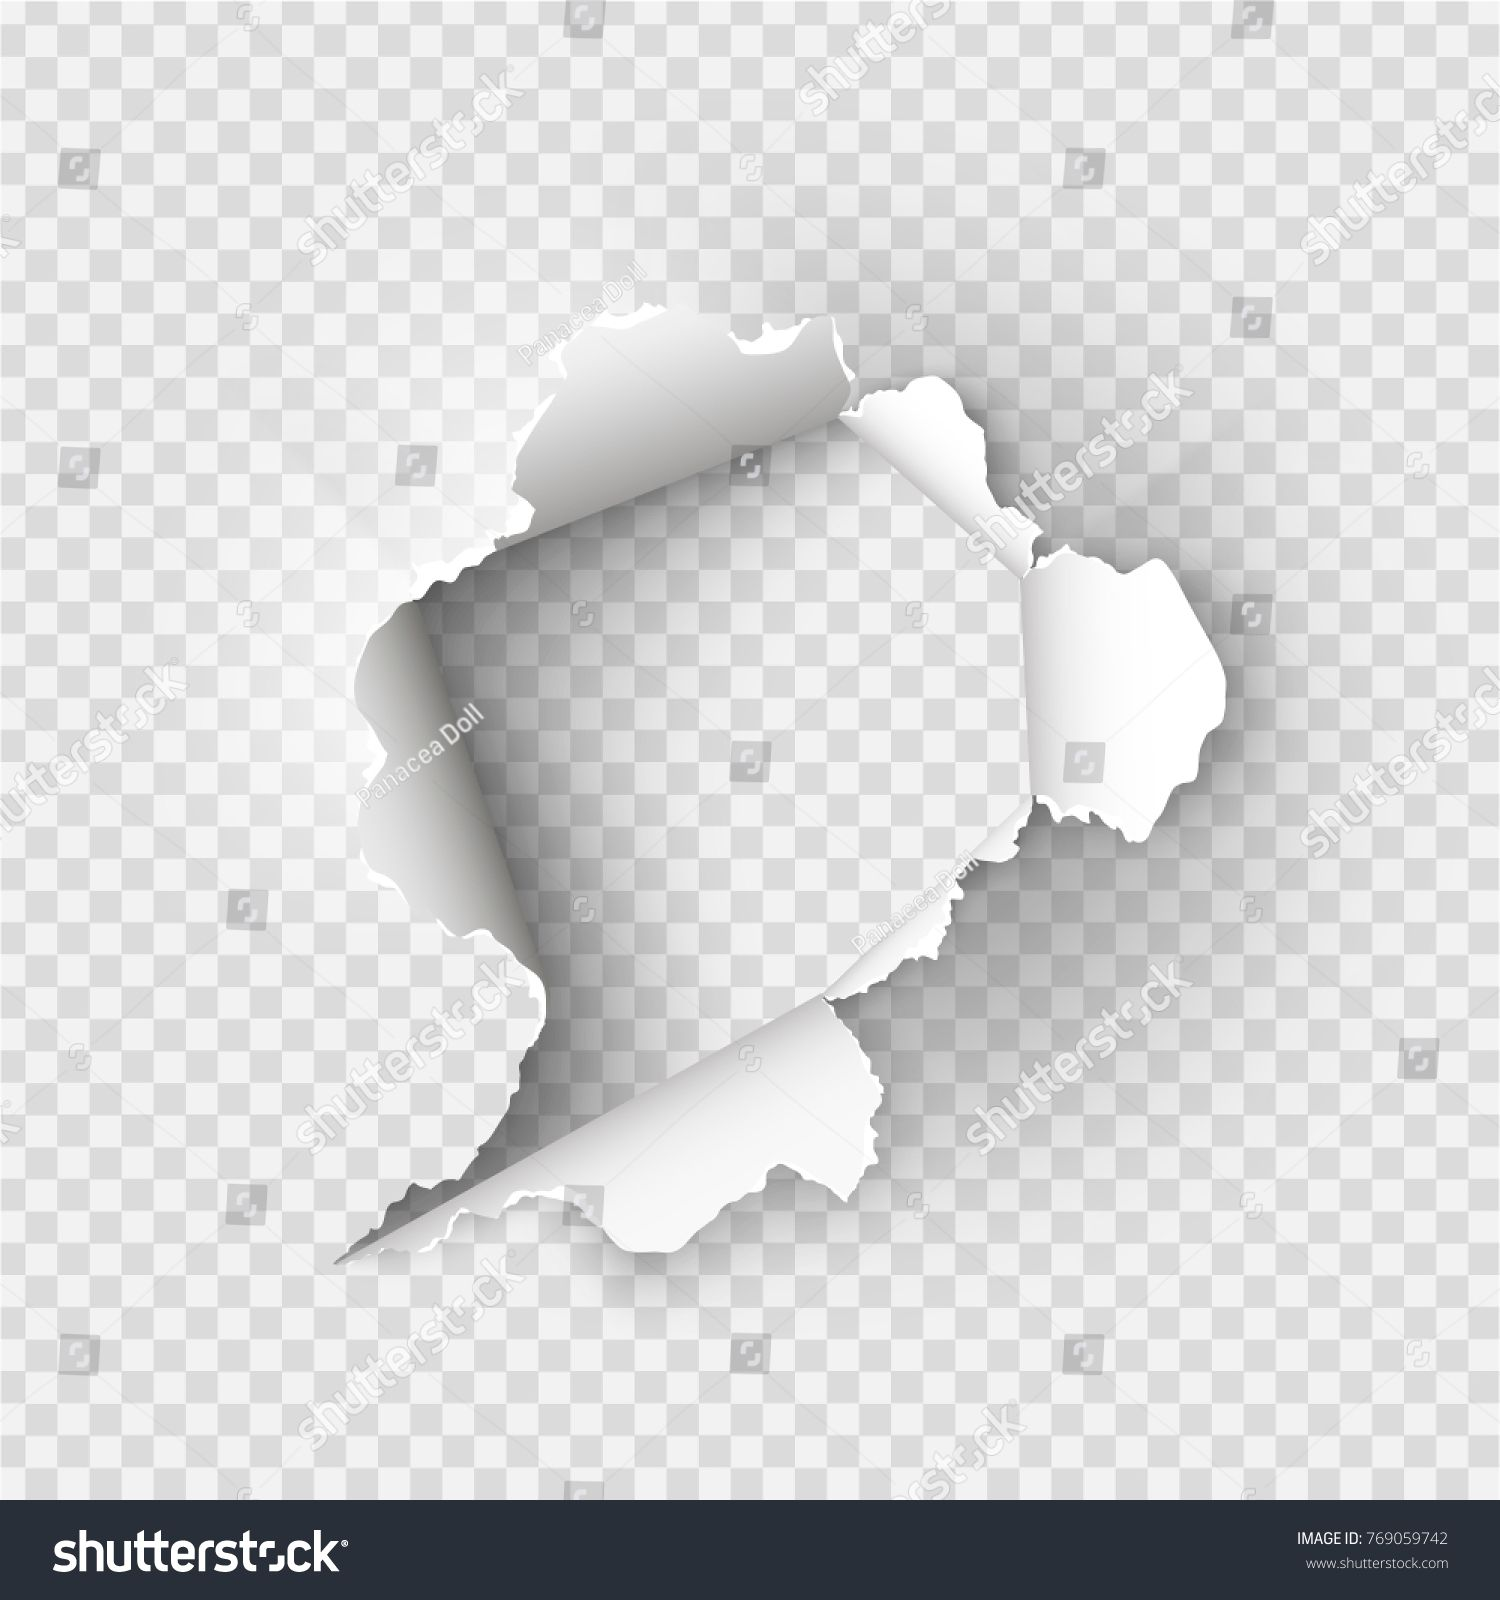 Ragged Hole Torn In Ripped Paper On Transparent Background Sponsored Sponsored Torn Hole Ragged Rip Vector Free Collage Background Transparent Background